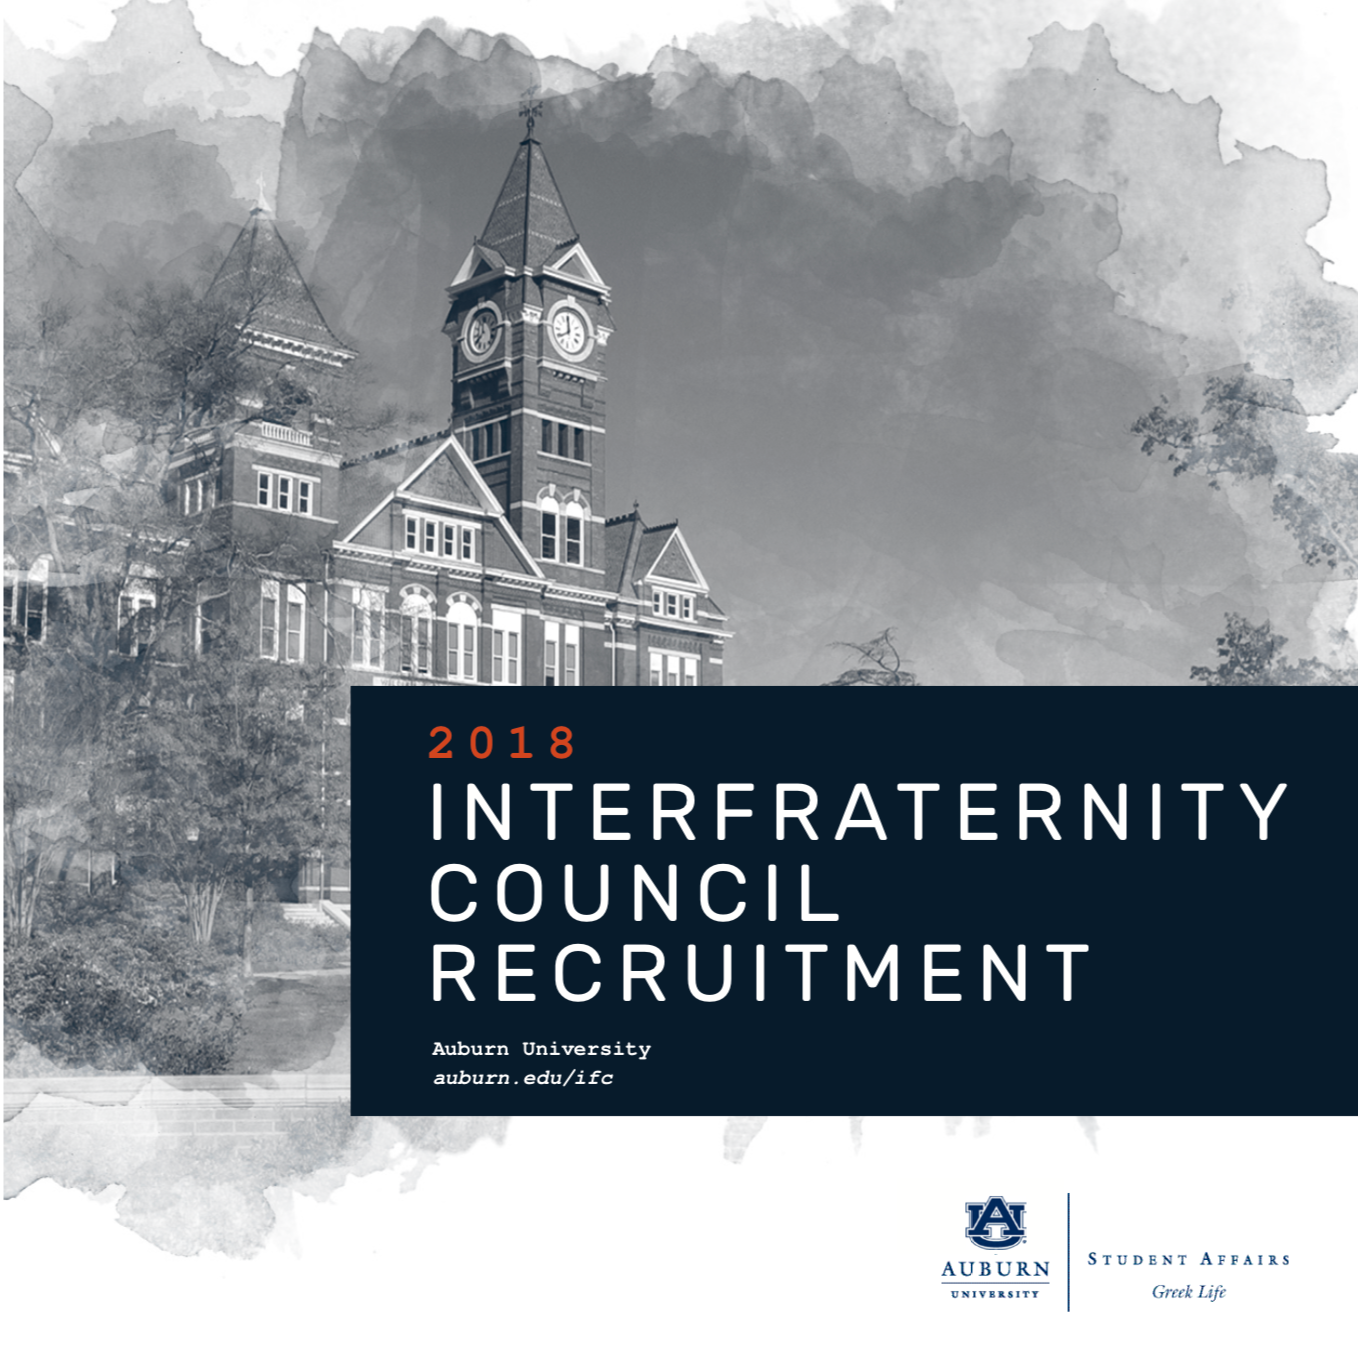 Interfraternity Handbook for incoming Freshmen interested in Greek Life, May 2018